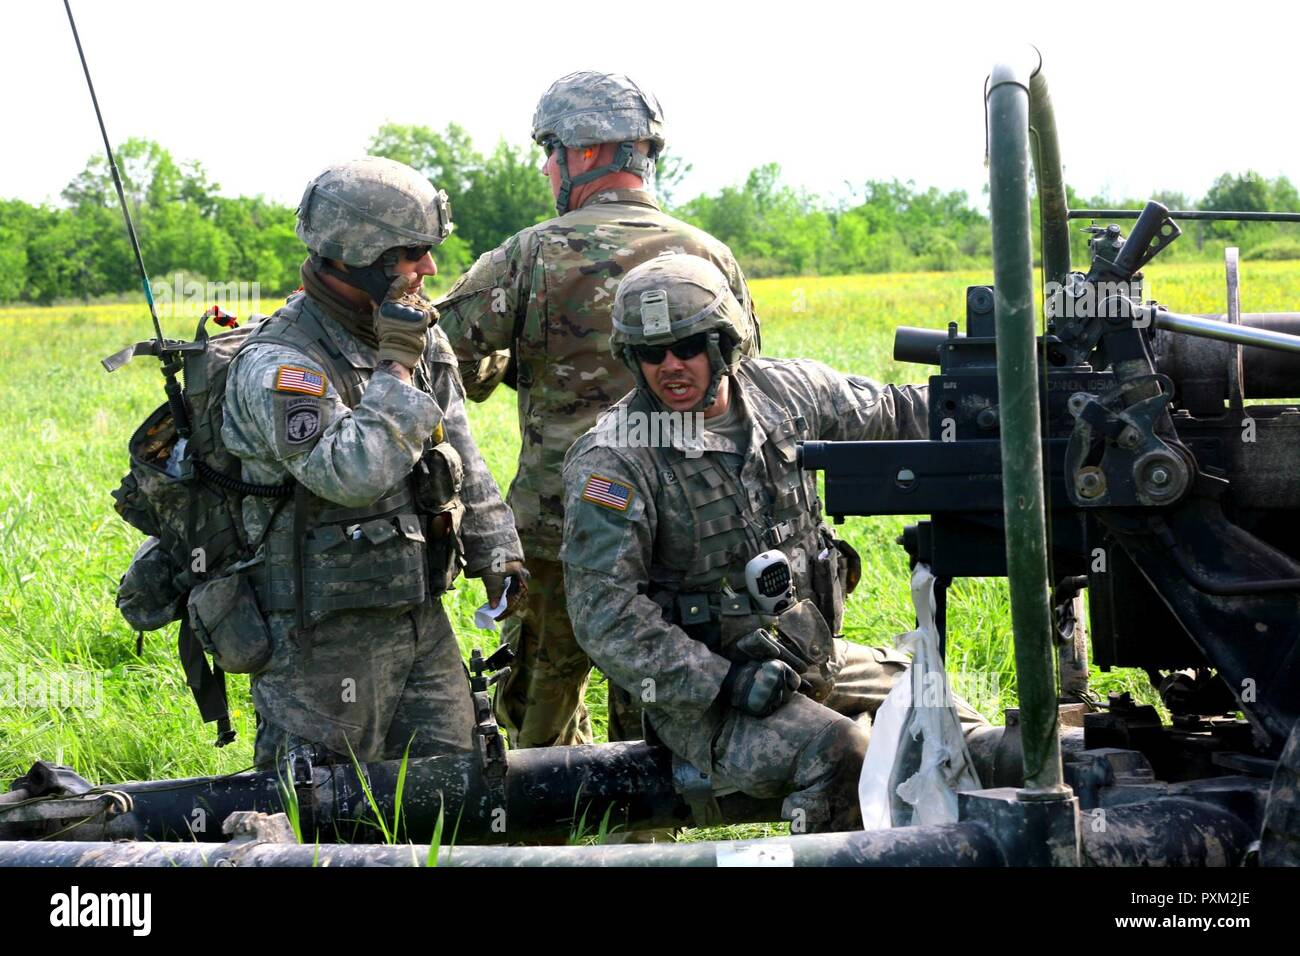 New York Army National Guard Soldiers assigned to Alpha Battery, 1st Battalion, 258th Artillery Regiment, 27th Infantry Brigade Combat Team prepares to fire an M119A2 105mm Howitzer during an air assault artillery raid at Fort Drum on June 9, 2017. During the raid, 4 of the battery's cannons were transported to a landing zone where they were then used to engage a simulated enemy target. - Stock Image